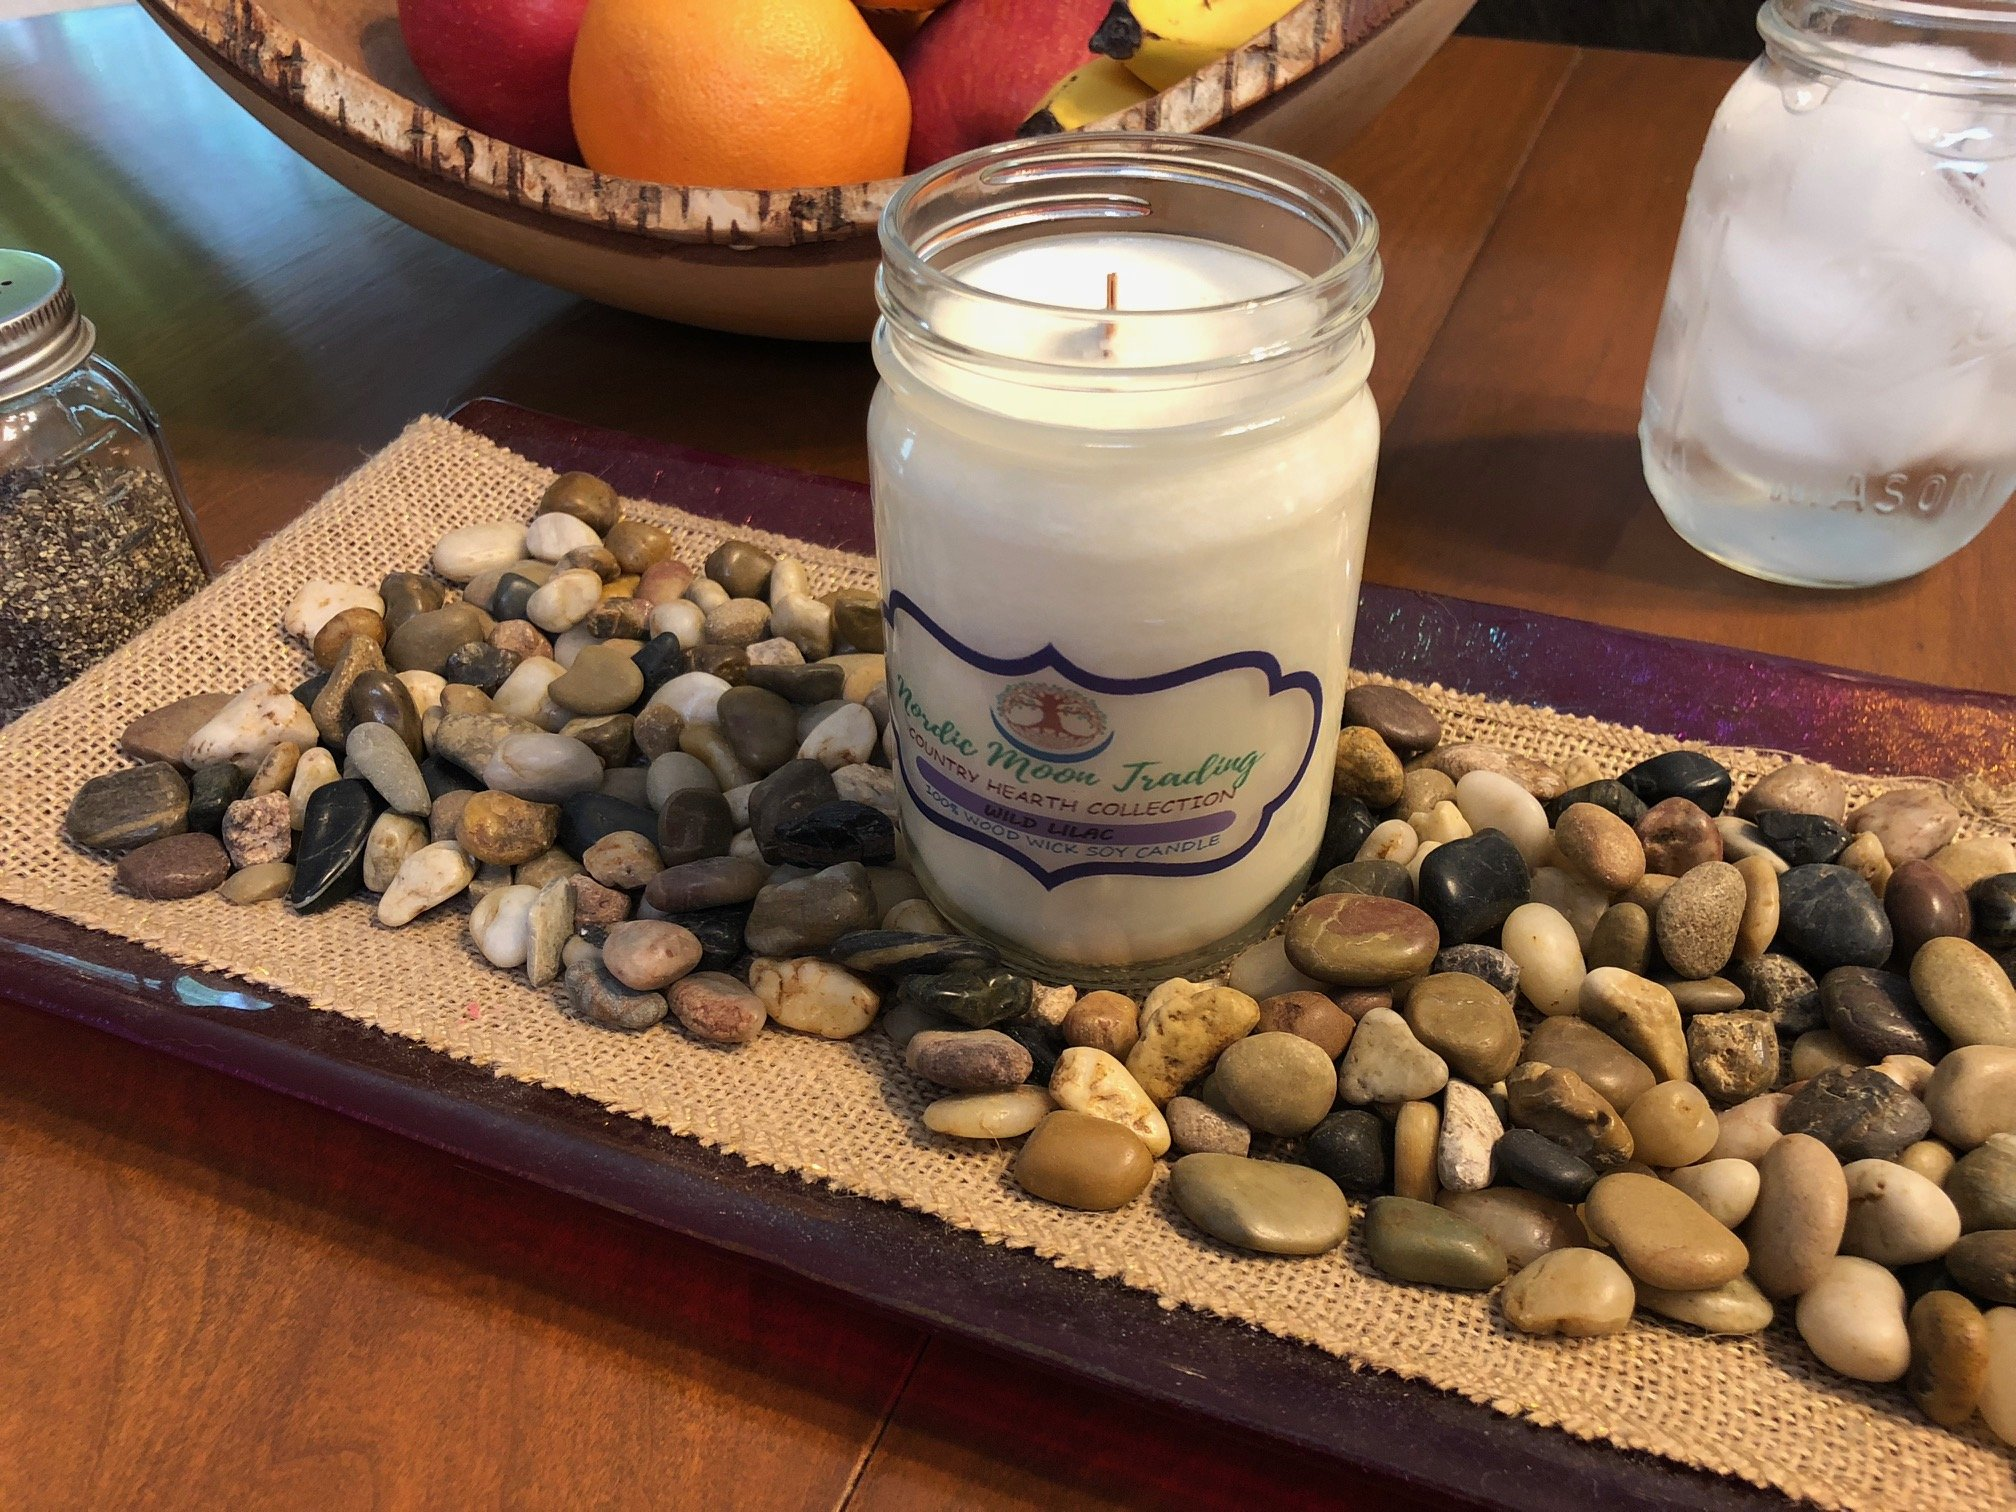 Nordic Moon Trading 100% Natural Soy Wax, Wood Wick Scented Candle 12 oz Mason Jar - Wild Lilac. Made in USA by Family Owned Business. 100 Hours of Burn Time. Clean Burning, No Black Soot. by Nordic Moon Trading (Image #3)